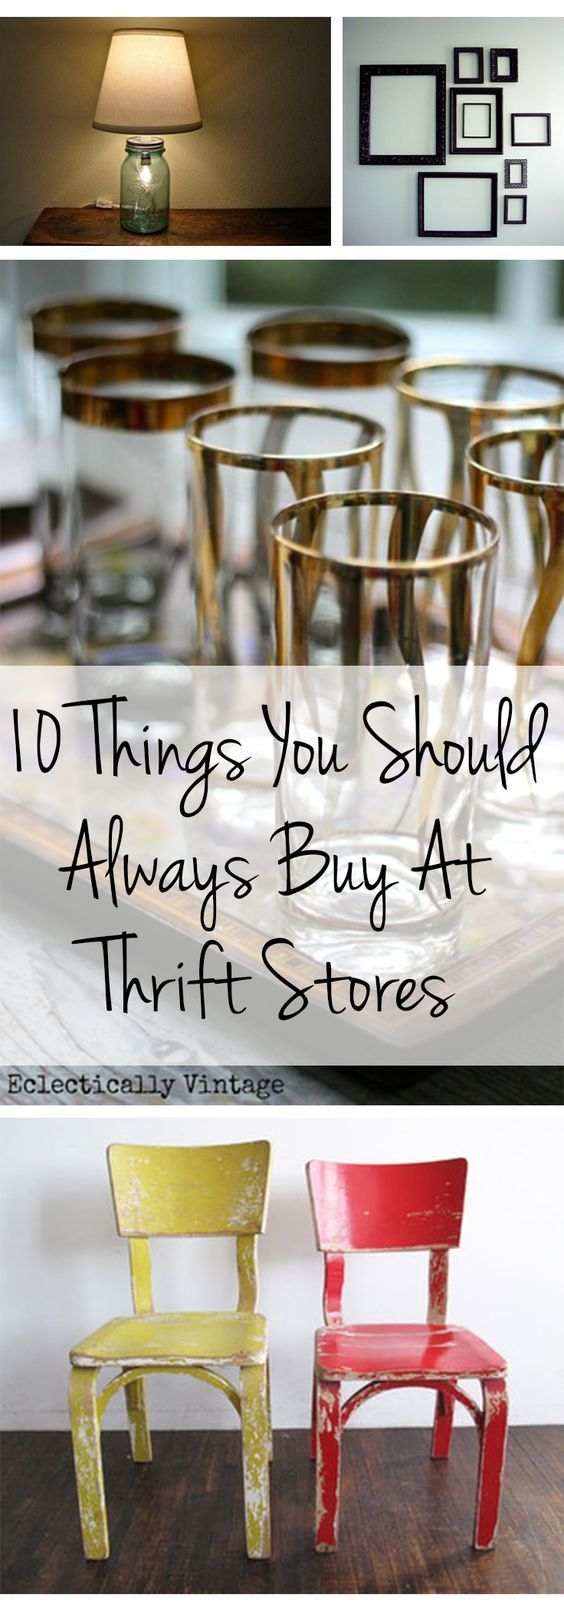 10 Things You Should Always Buy At Thrift Stores - Make a list of these items plus others that you may specifically need and take it with you when you shop Goodwill! www.goodwillvalleys.com/shop/